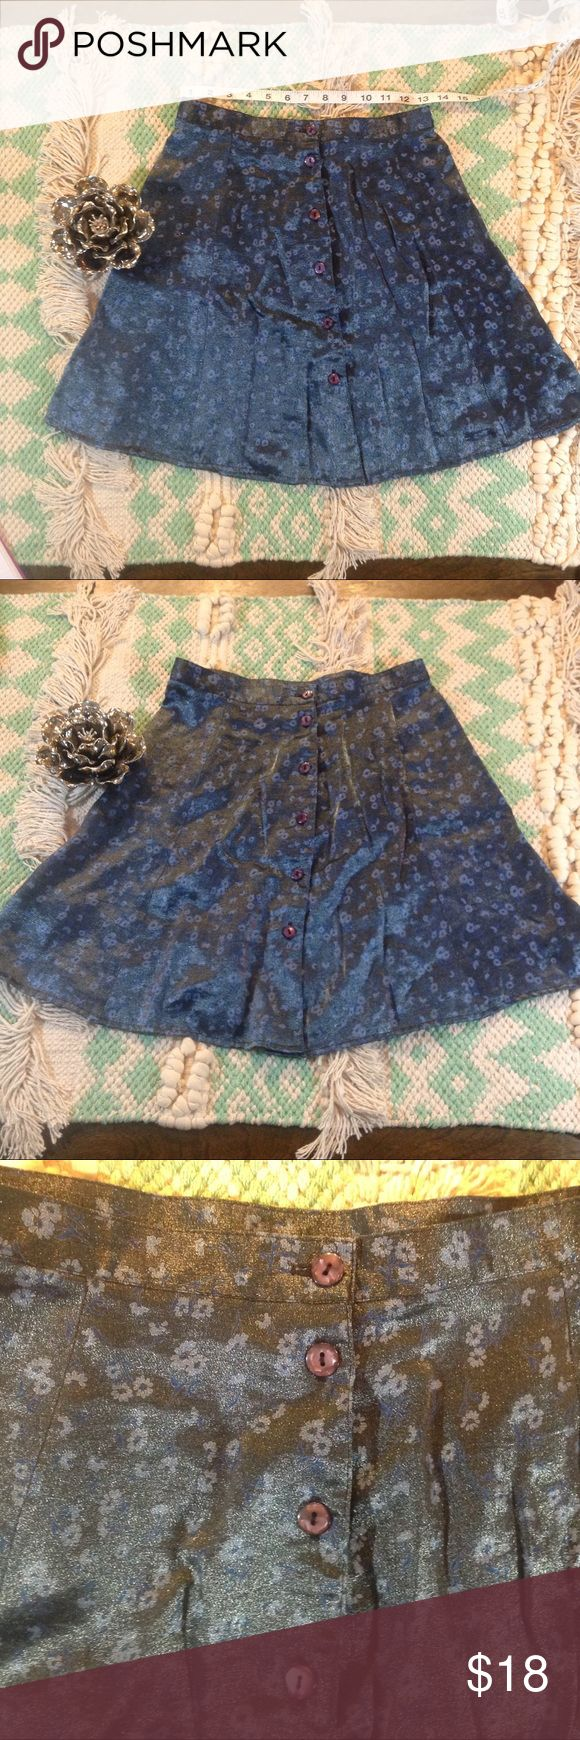 """Vintage Iridescent Button-up High-waisted Skirt! This lovely little 90's number is by ExactChange. It is made of this magical iridescent floral fabric that seems to change colors with the light. In person, it is more dark silver than the pictures suggest. The flowers are two-toned blue, though. It's an A-line, high-waisted style with purple buttons down the entire front. States is a Size 7 but I think it would fit a Small or XS. Laying flat: waist 13"""", length 18"""". Vintage Skirts Mini"""